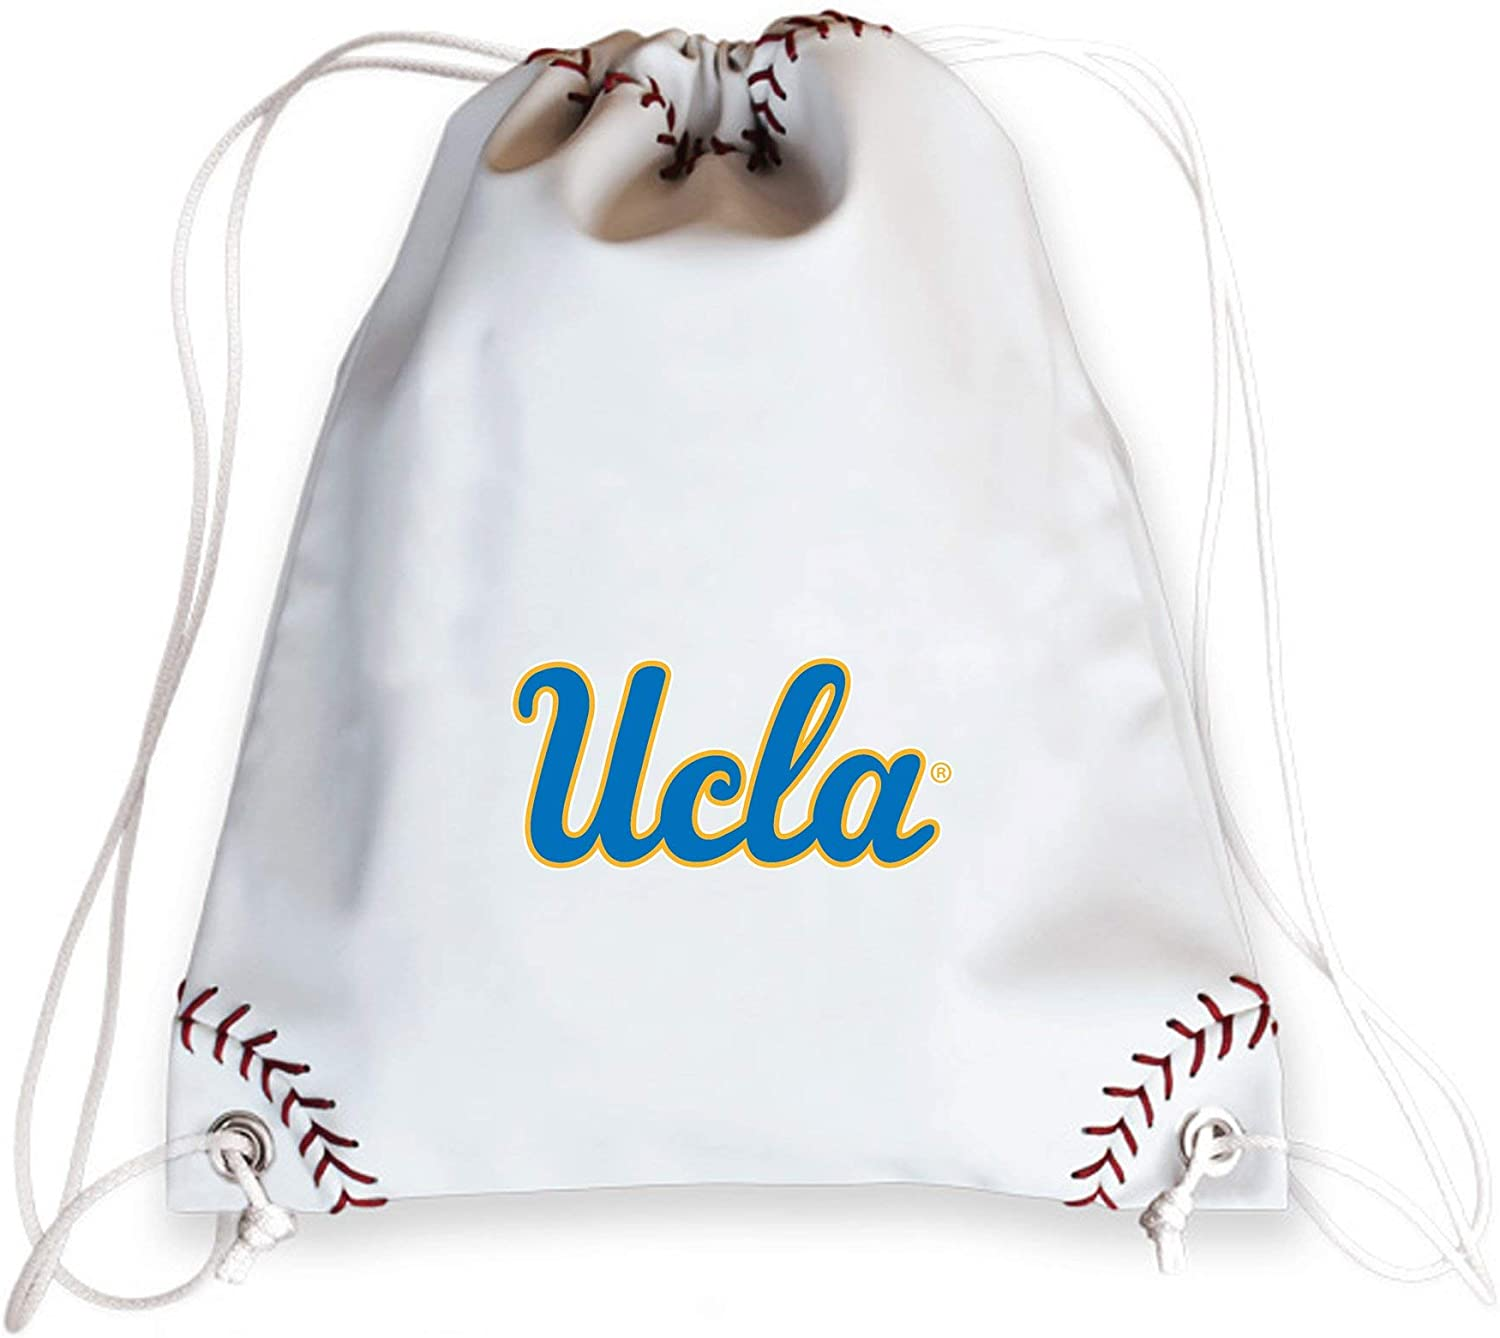 Zumer Sport UCLA Bruins Baseball Leather Drawstring Shoulder Backpack Bag - made from the same exact materials as a baseball - White with genuine red stitching